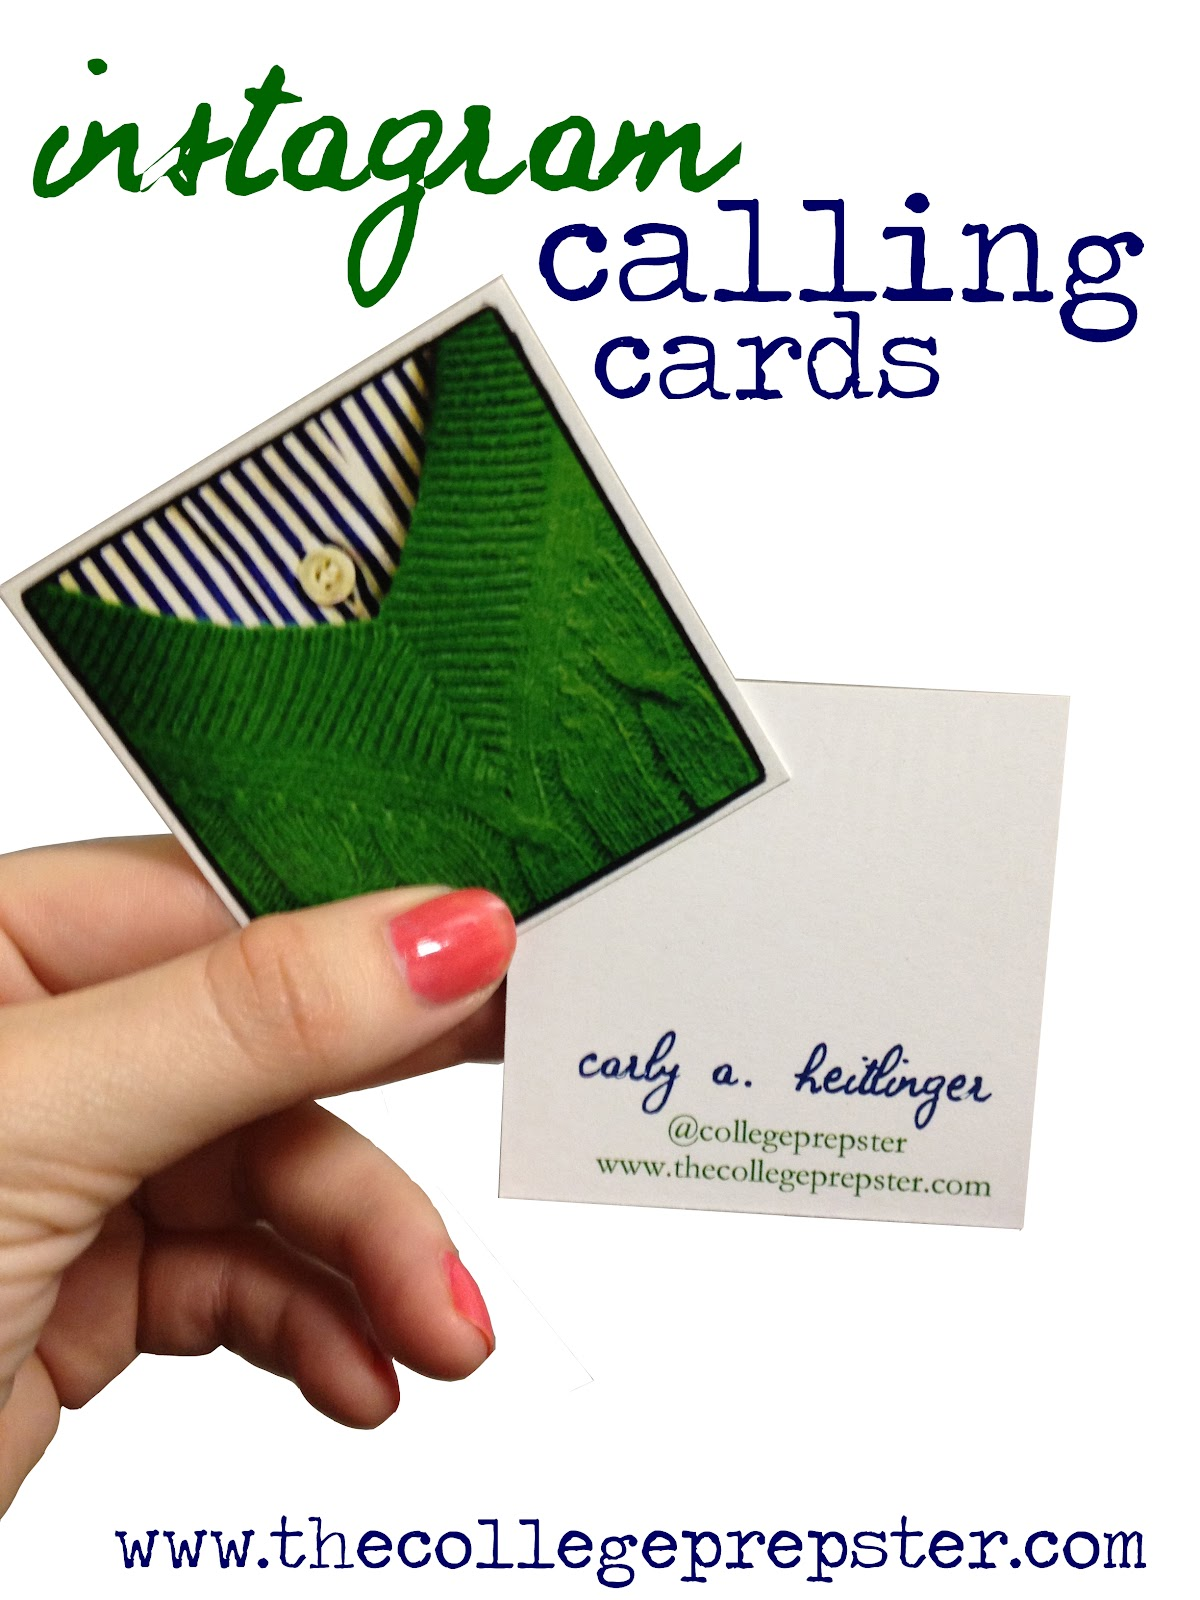 Instagram Business Cards - The College Prepster